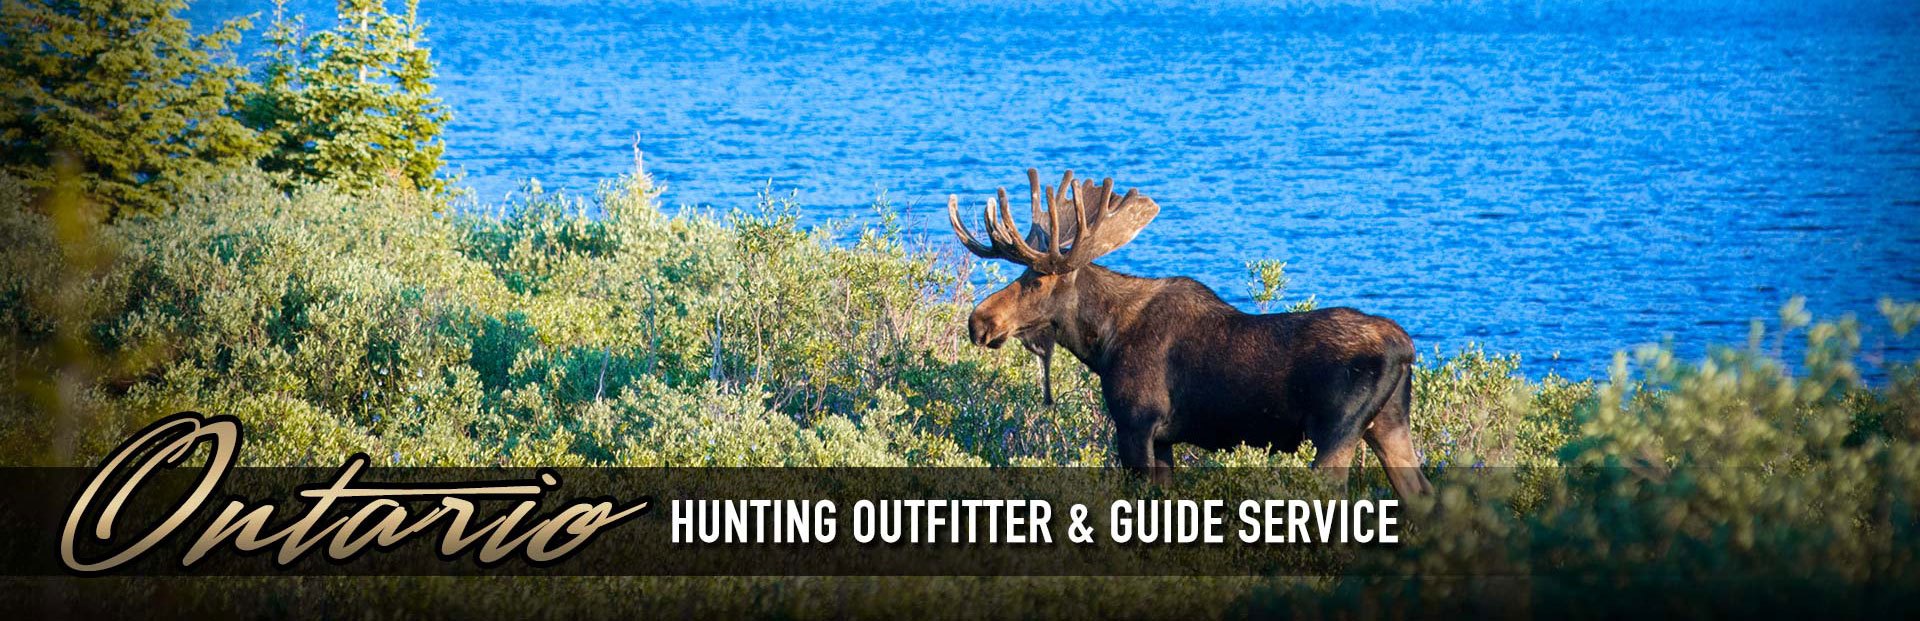 Ontario Hunting Guide Services by Lac Seul Lodge